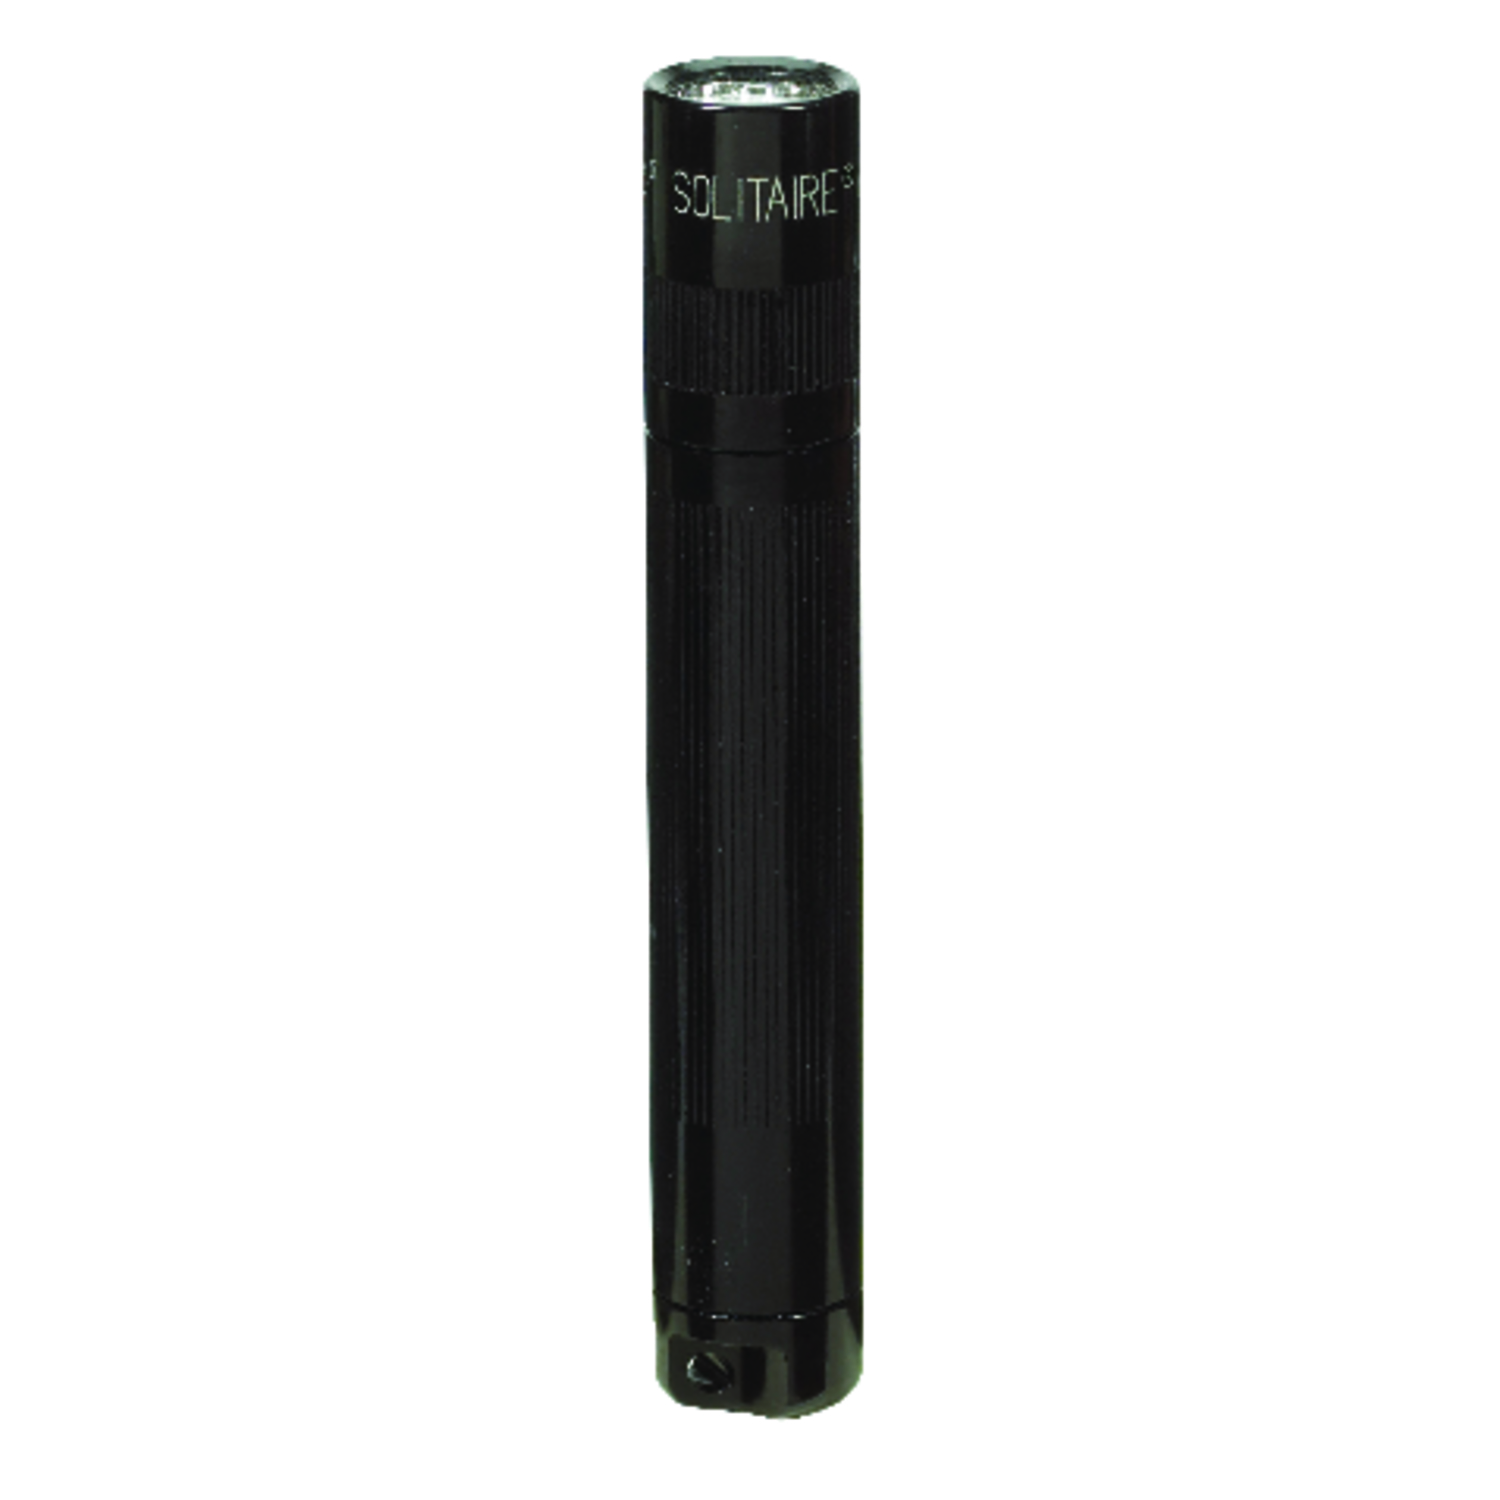 Maglite  Solitaire  2 lumens Black  Incandescent  Flashlight With Key Ring  AAA